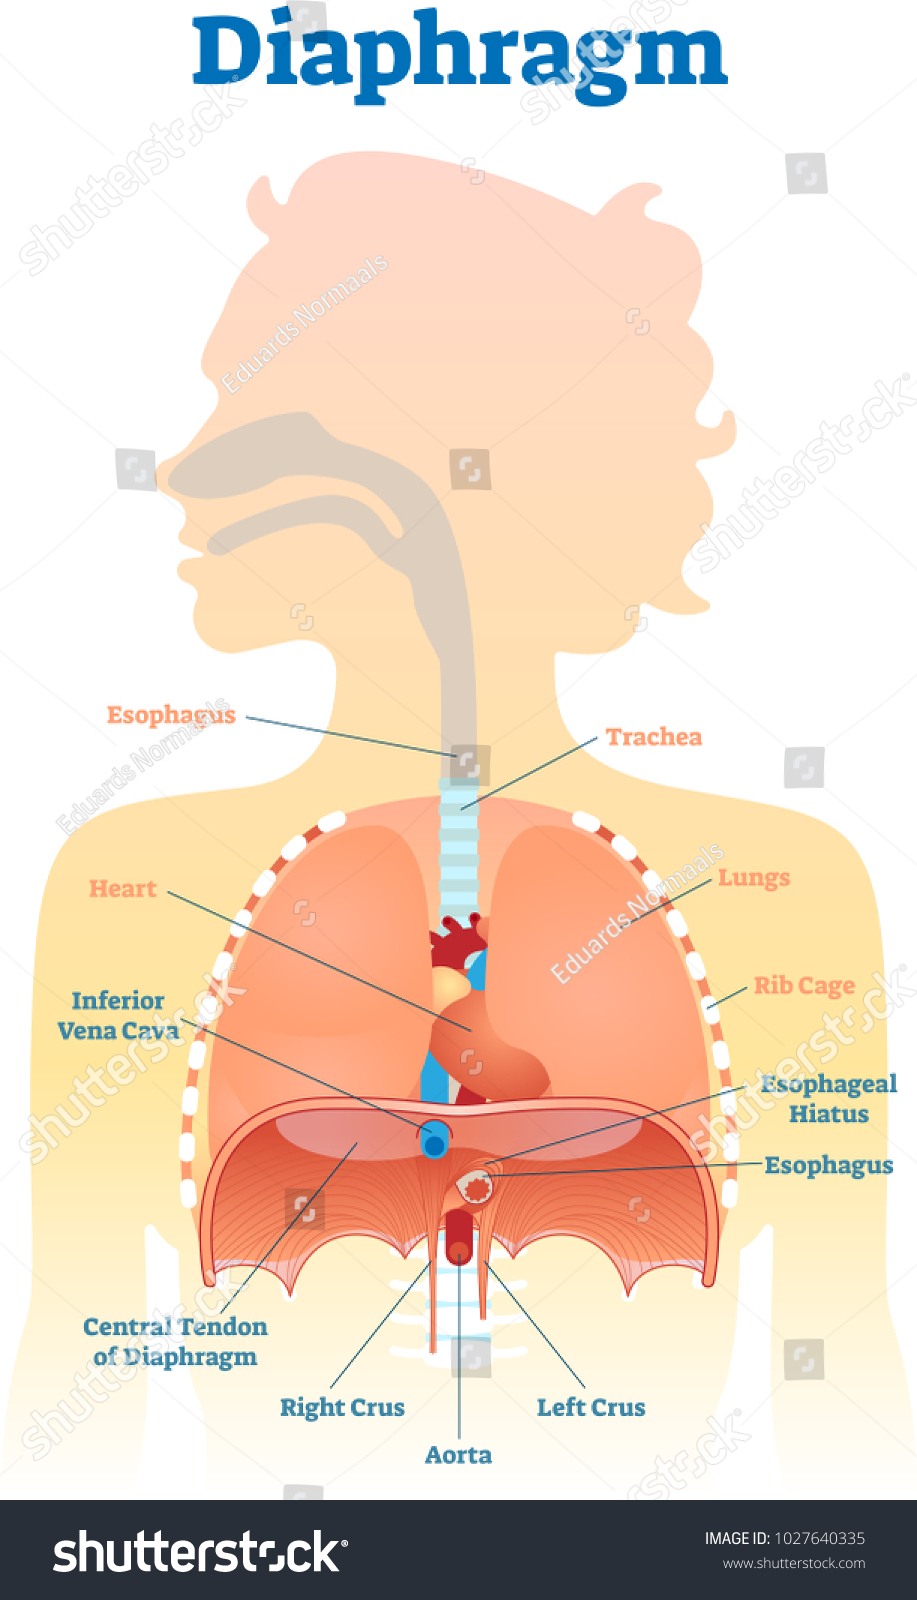 Diaphragm Anatomical Vector Illustration Diagram Educational Stock